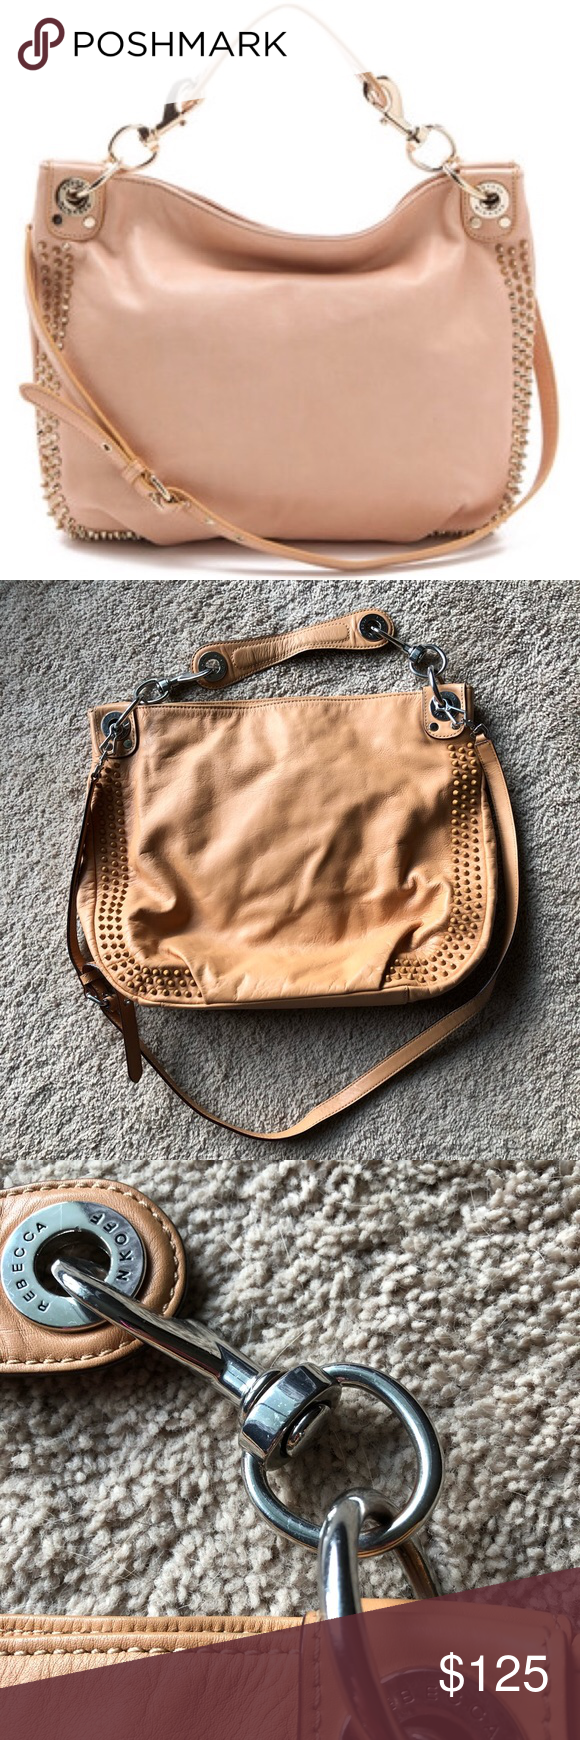 4aca8b429f3 Nude Rebecca Minkoff Purse Great condition! Can be worn on shoulder or as  crossbody. Roomy and clean inside. Rebecca Minkoff Bags